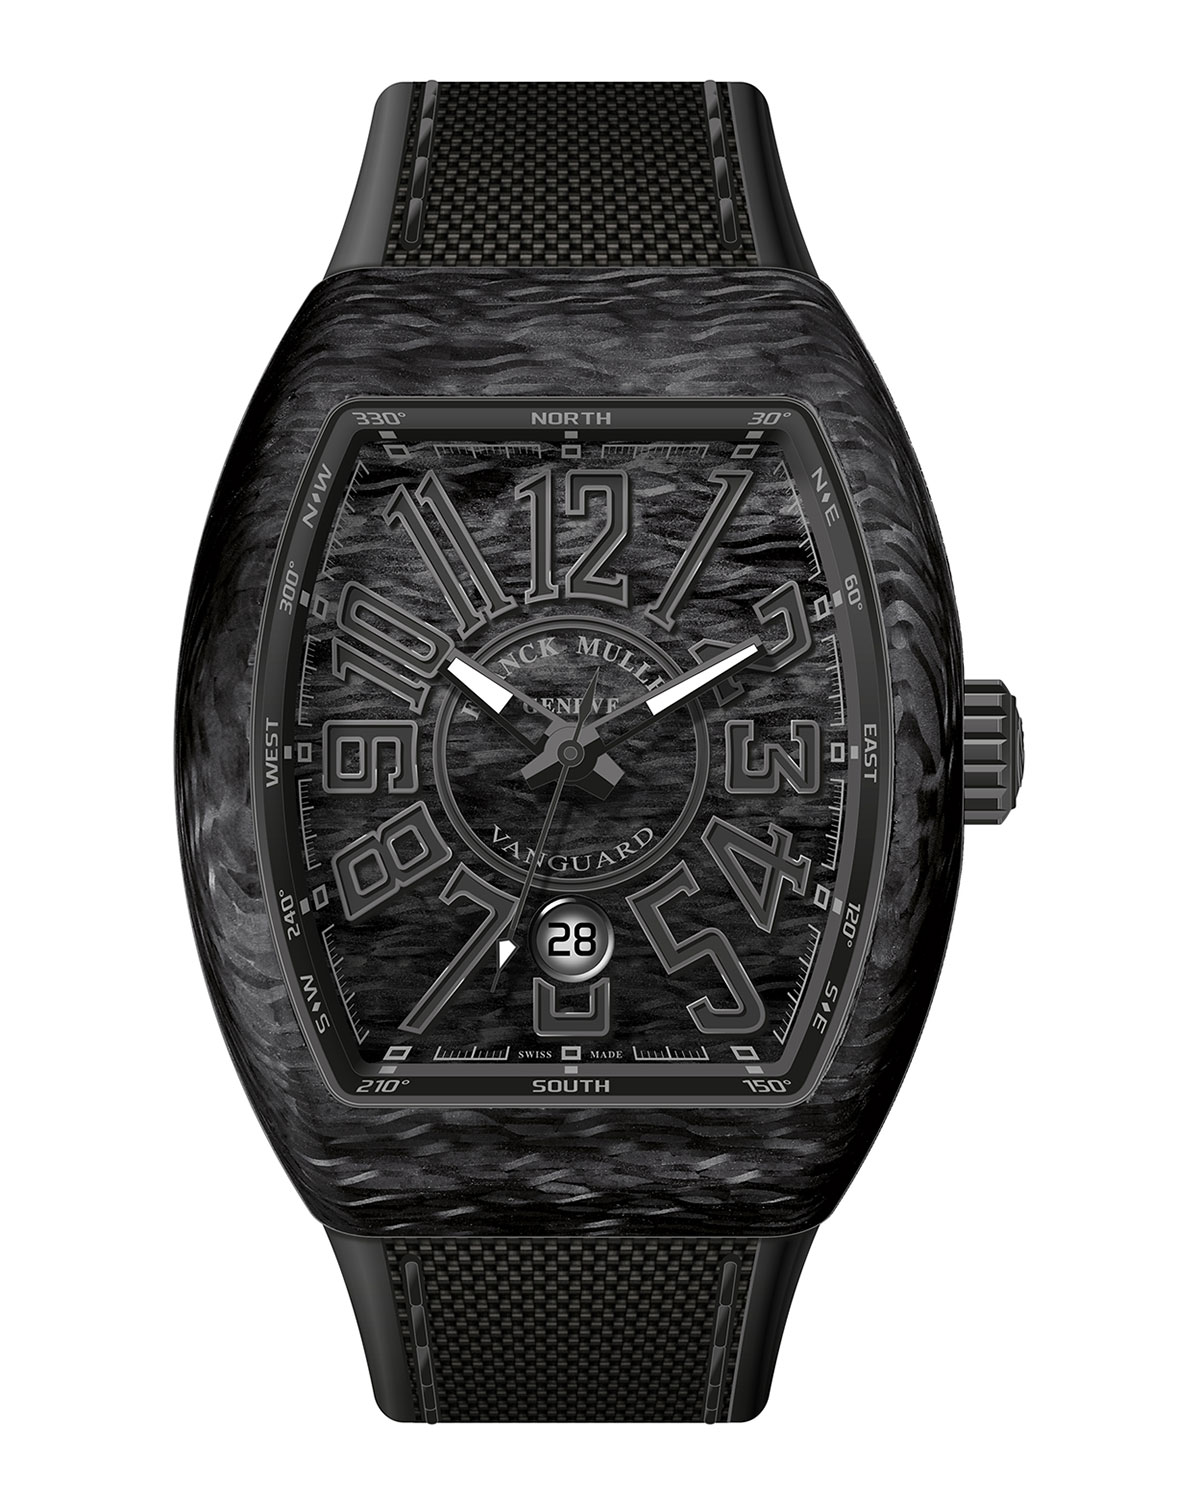 c6f0ca17e36 Franck Muller Vanguard Watch with Black Carbon Fiber Strap